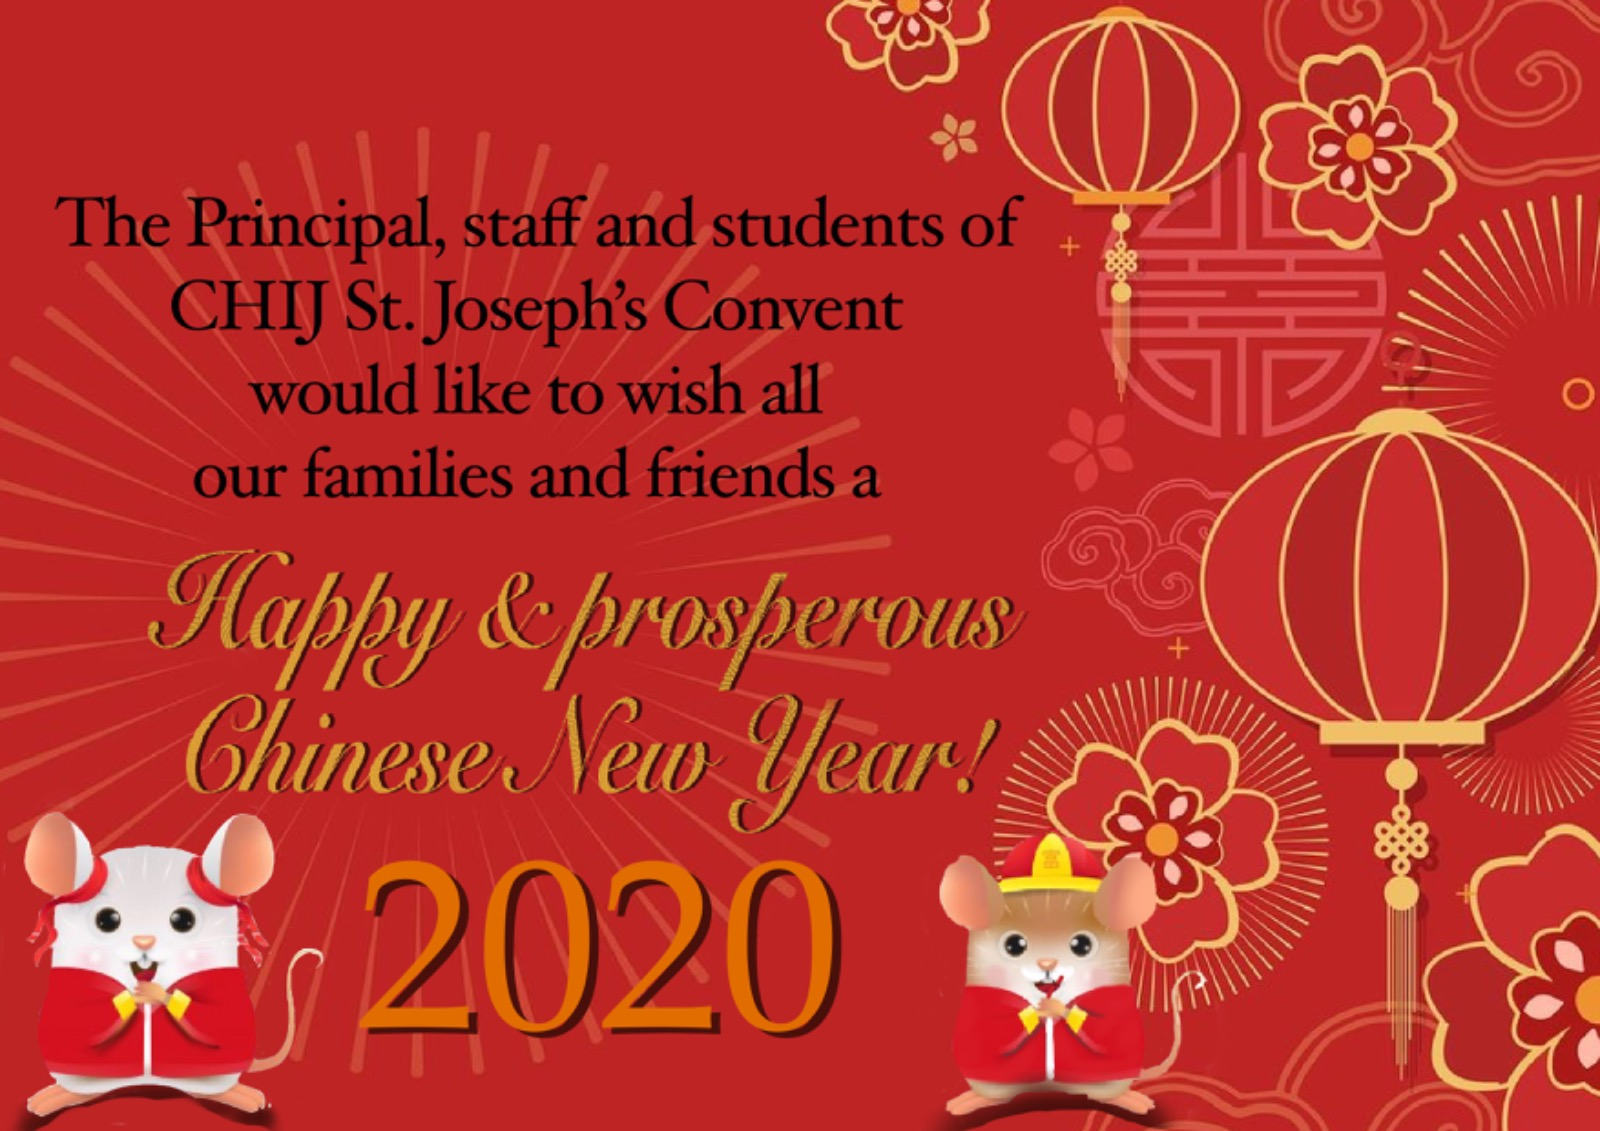 Happy & Prosperous Chinese New Year!